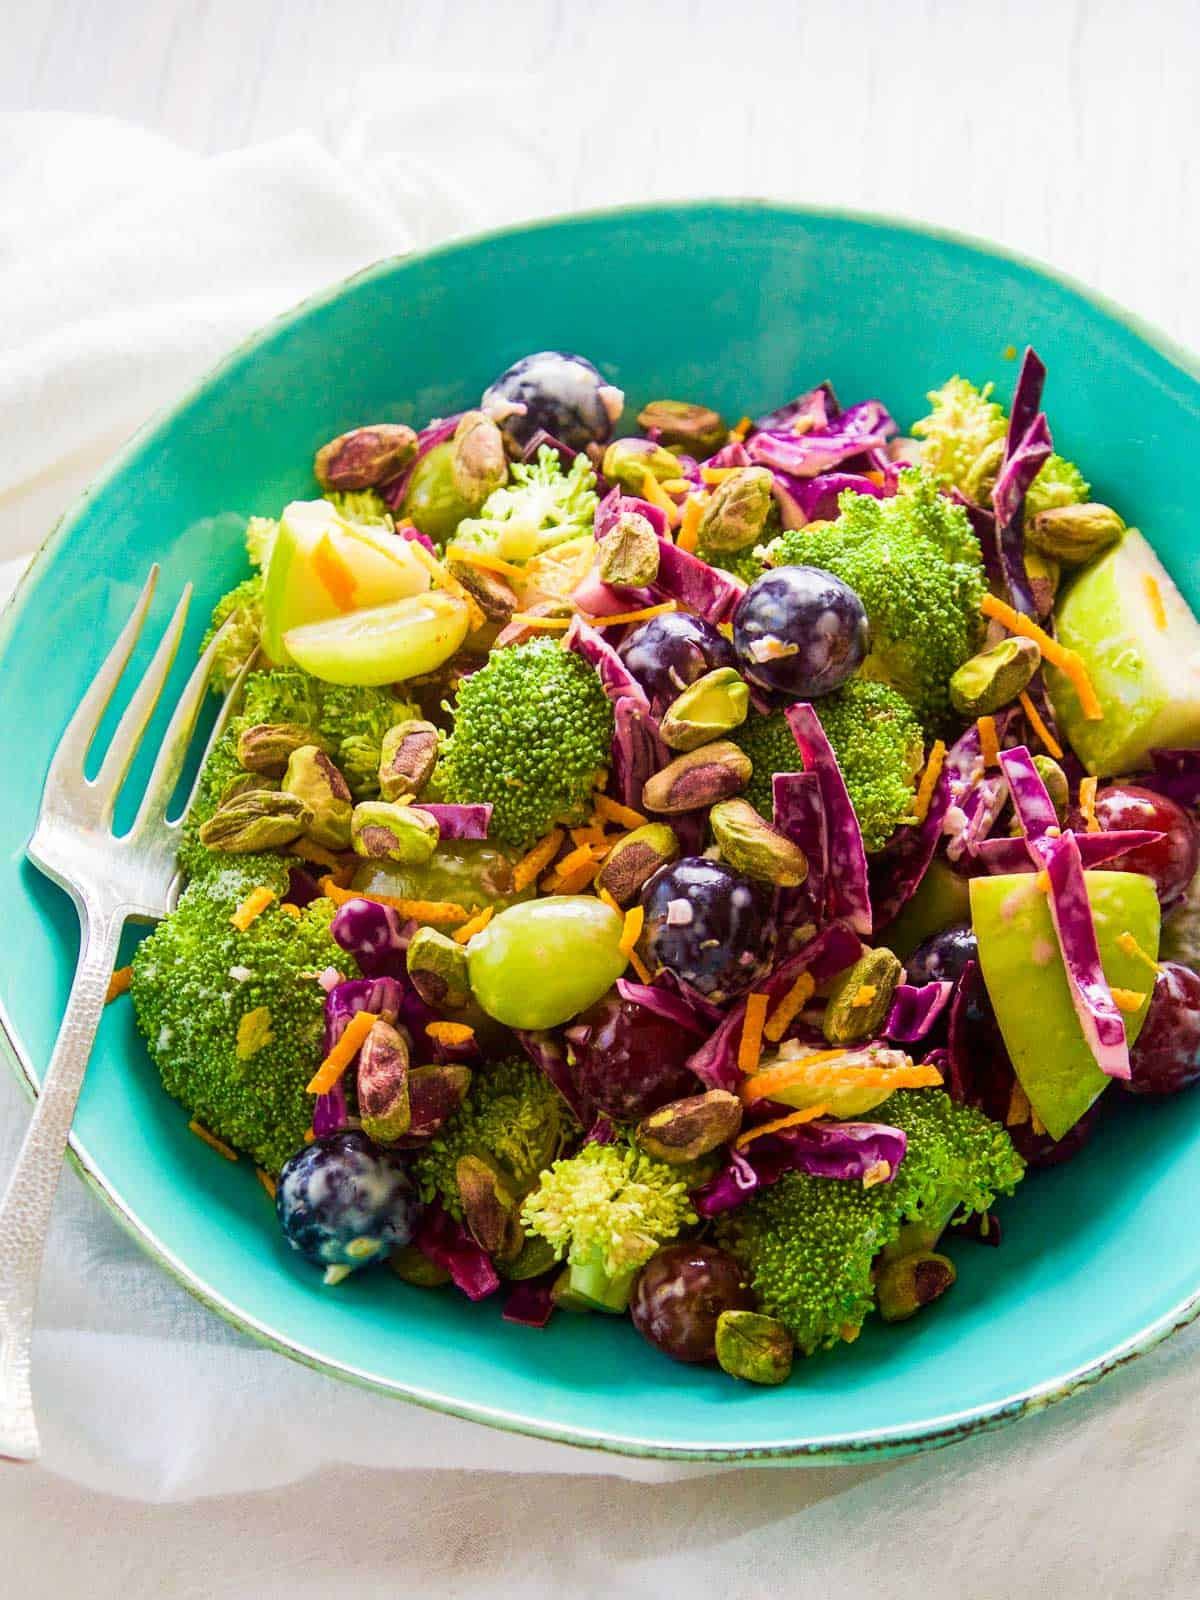 A turquoise blue bowl filled with colorful broccoli salad with pistachios and grapes.